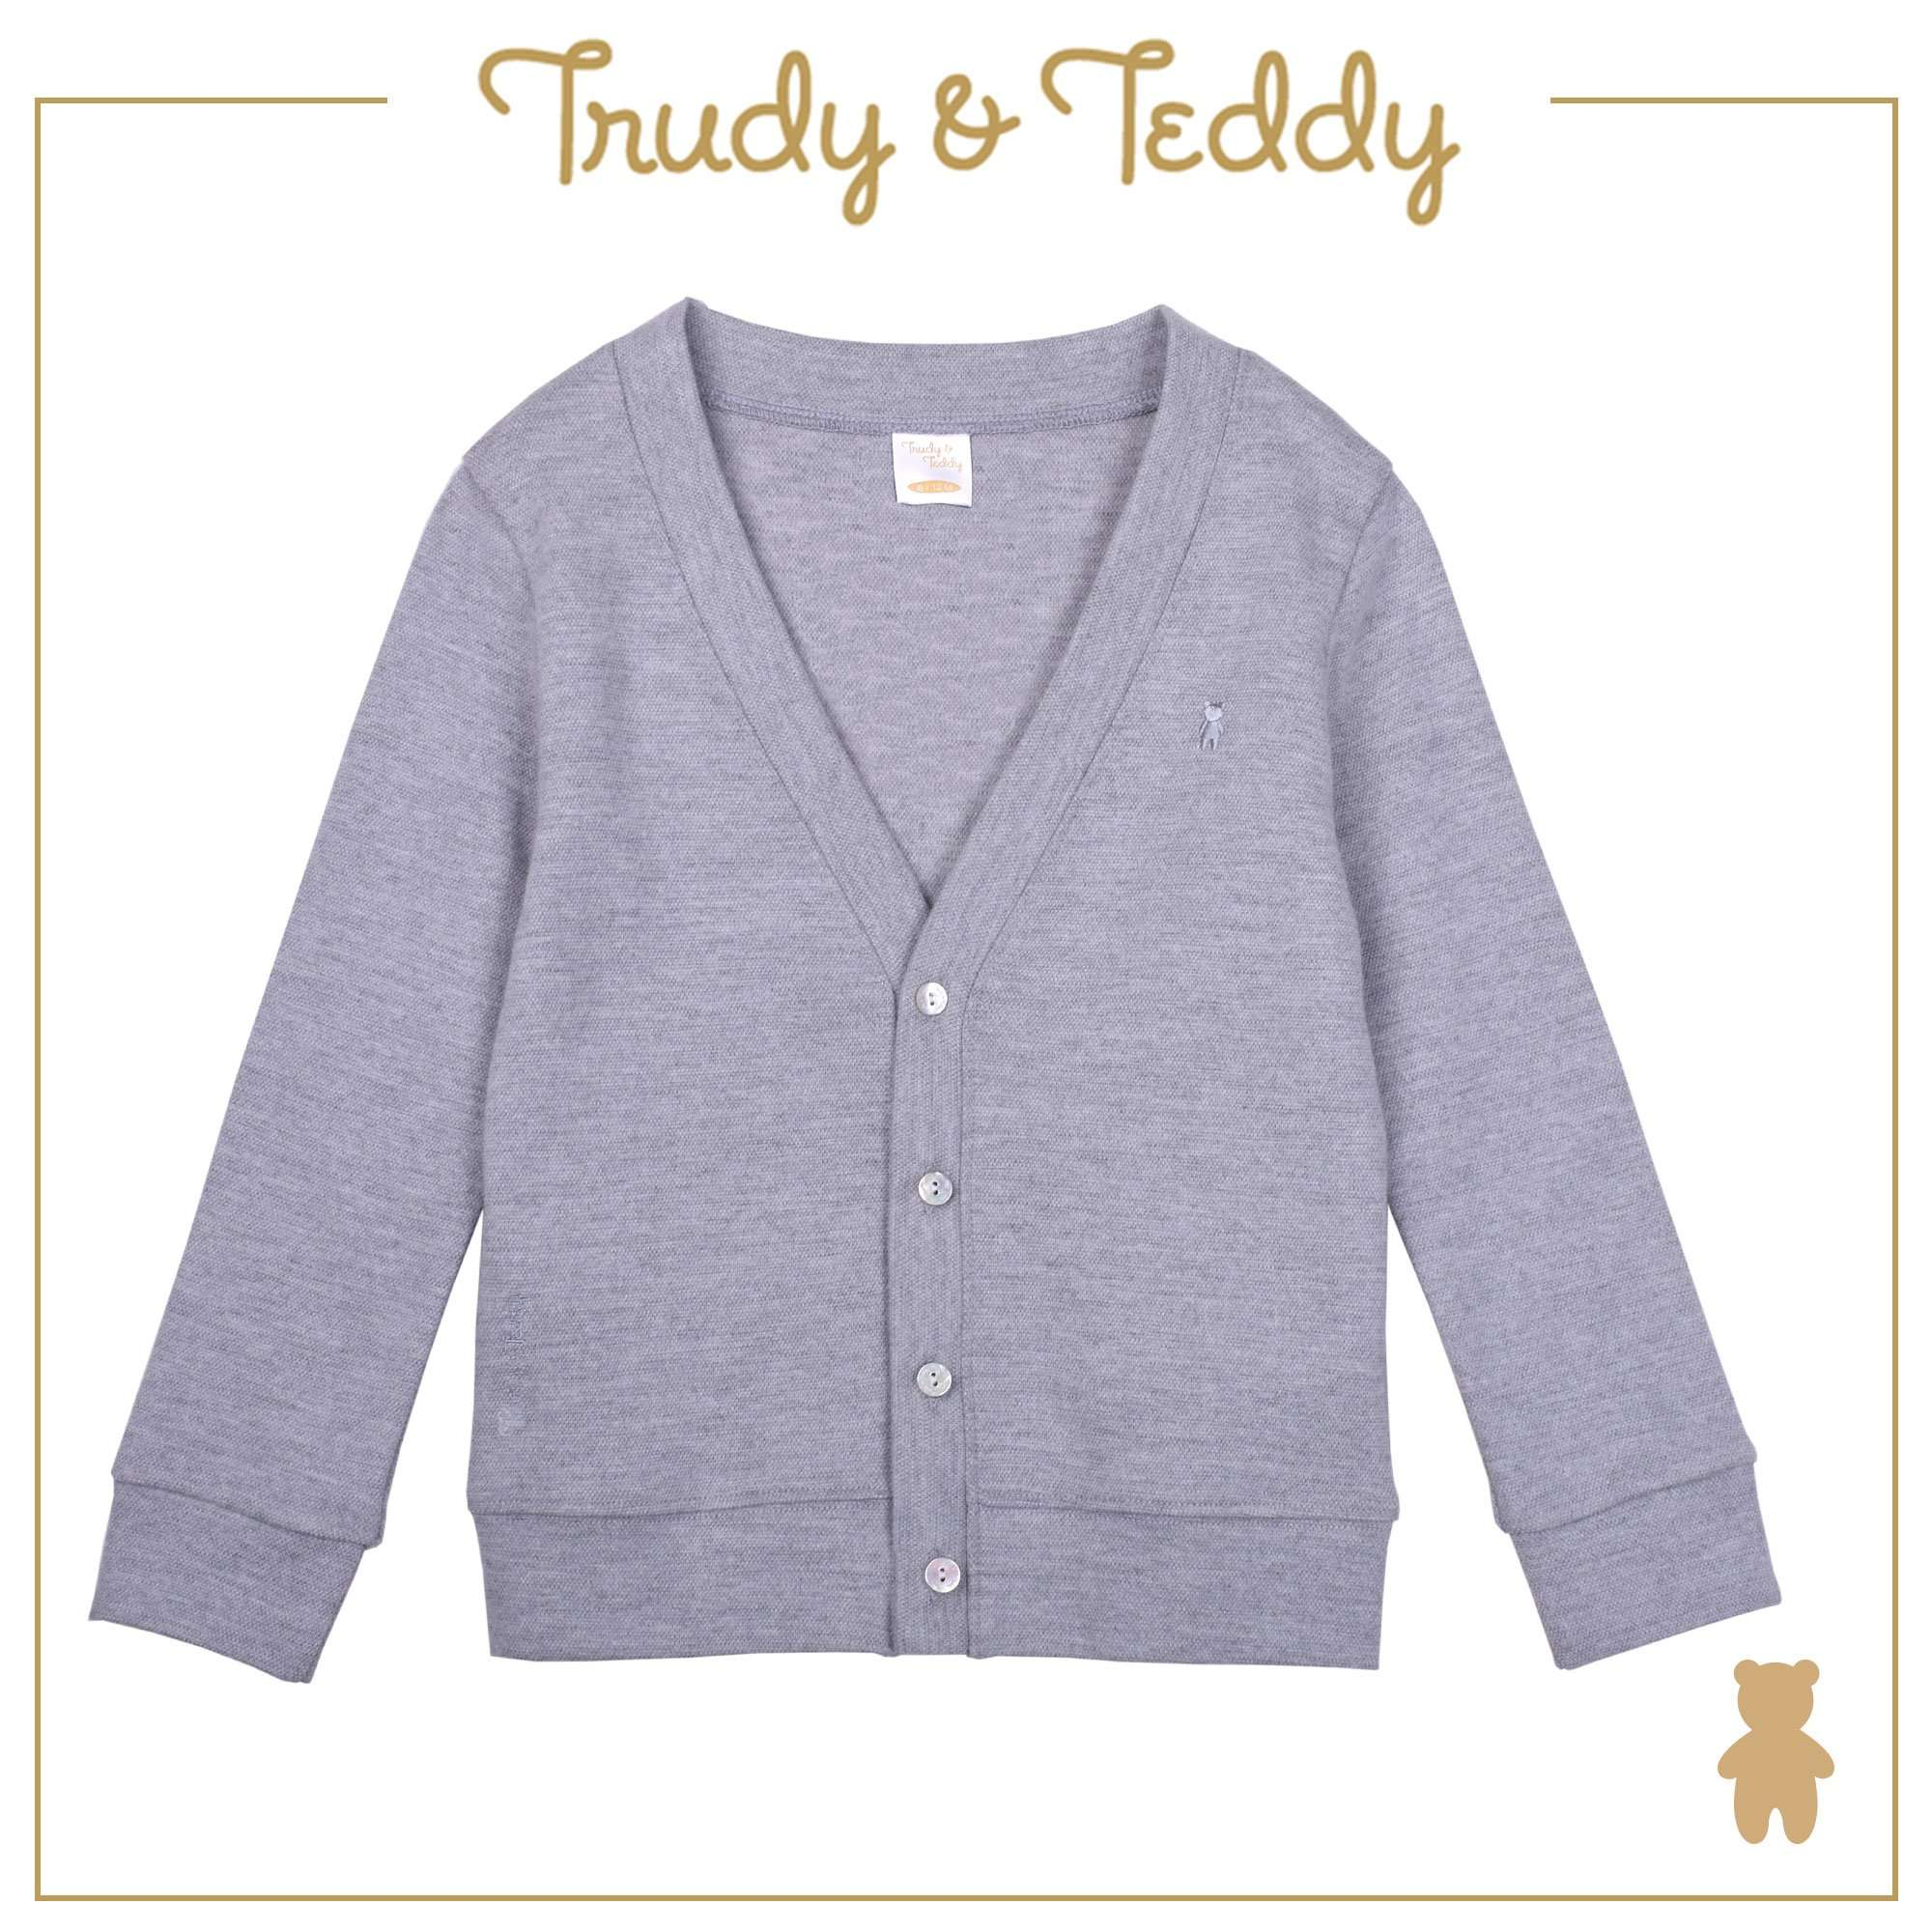 Trudy & Teddy Baby to Kid Boy Cardigan Blazer - Light Grey T922001-1613-G1 : Buy Trudy & Teddy online at CMG.MY